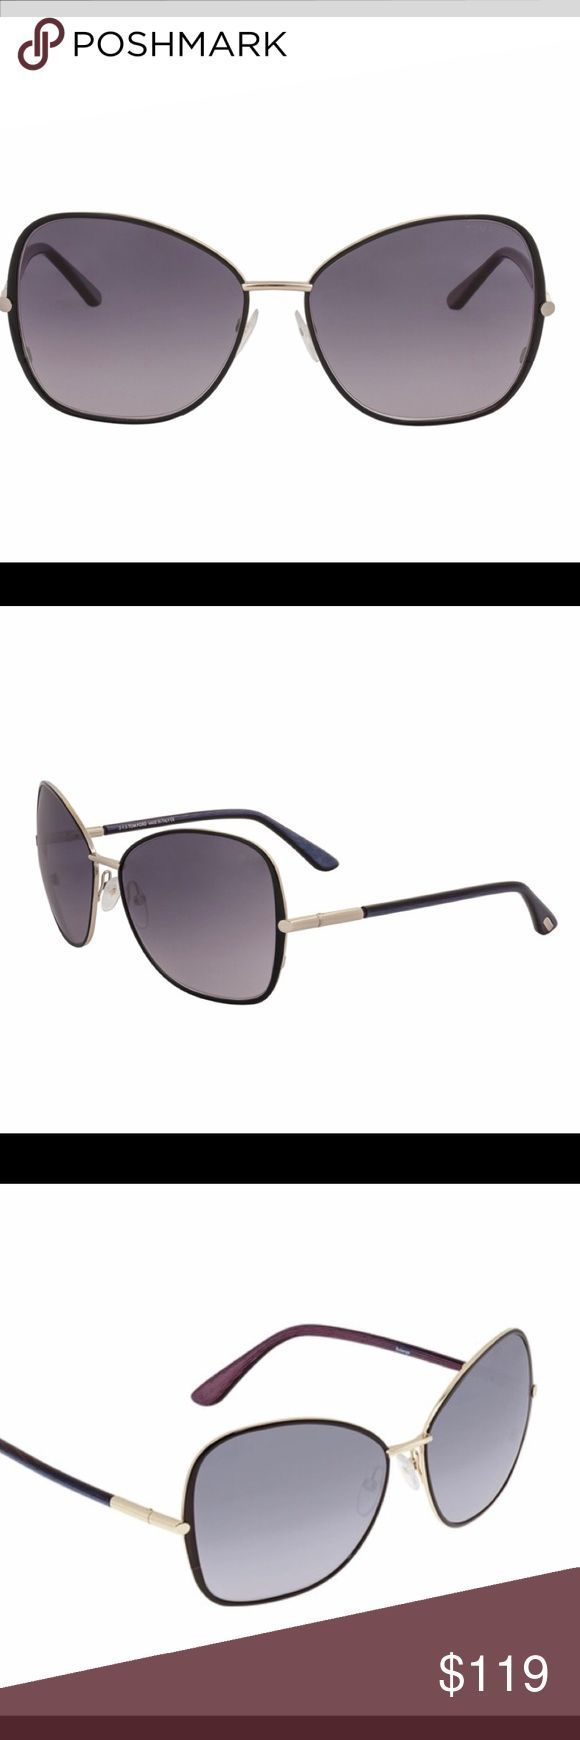 Tom Ford Solange Gradient Butterfly Sonnenbrille Tom Ford Solange Gradient Smoke B ..., ...   - Sch